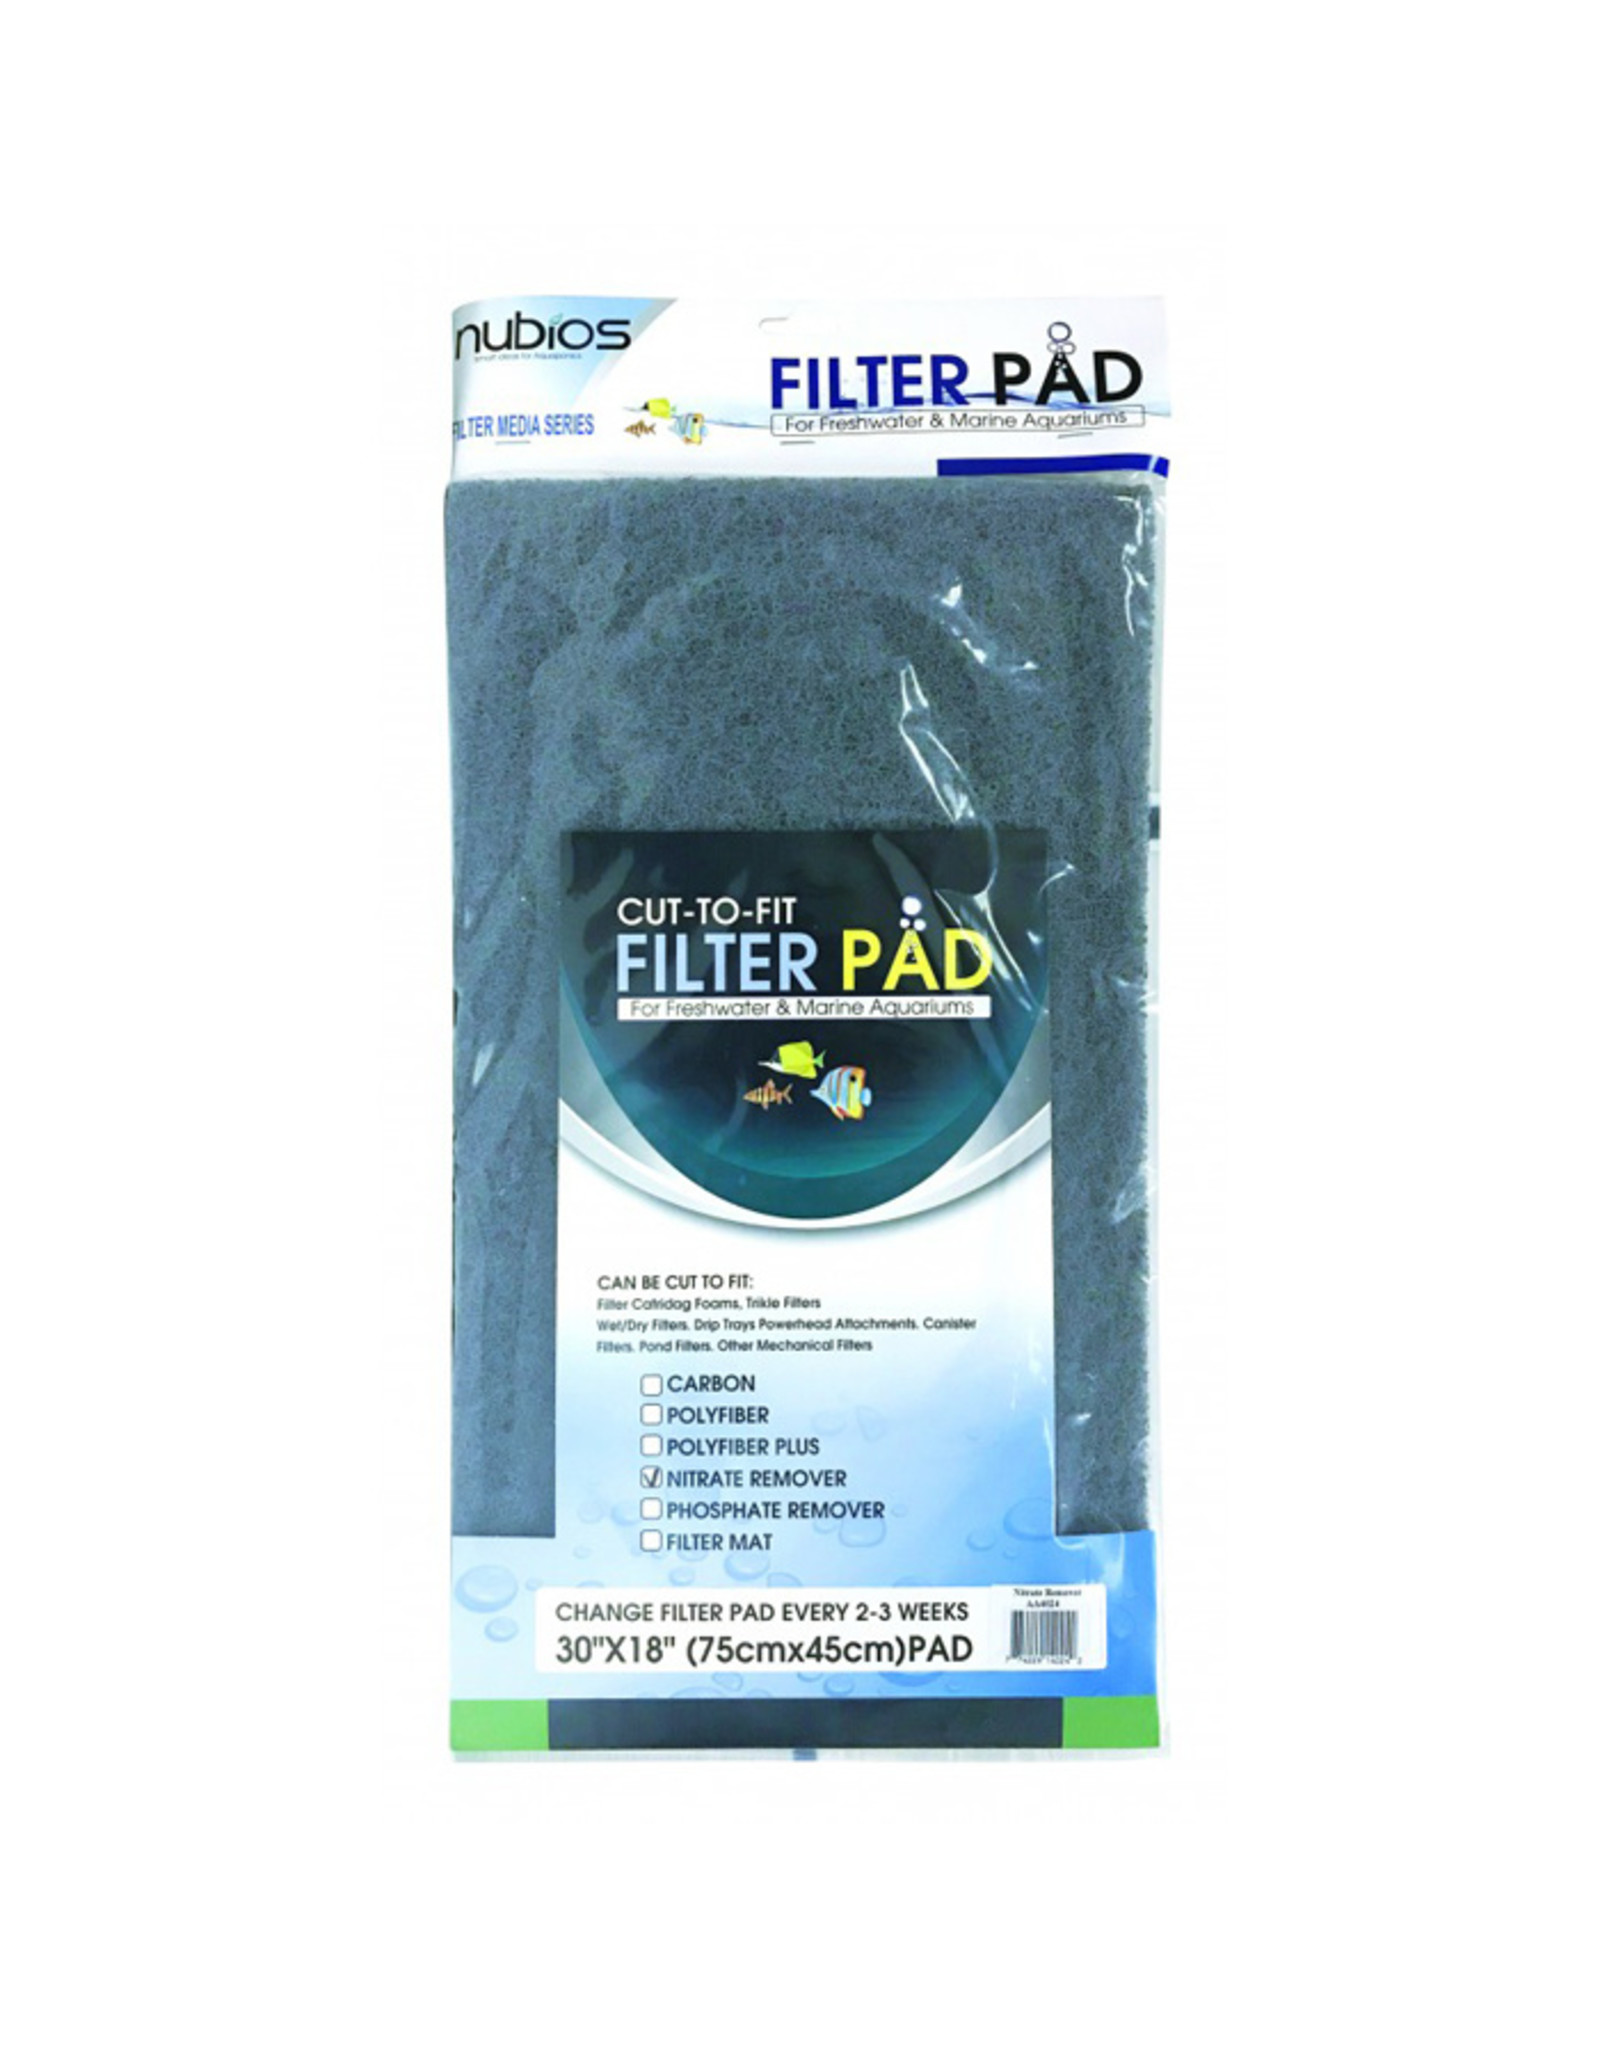 Nubios NUBIOS Cut-to-fit Filter Pad Nitrate Remover